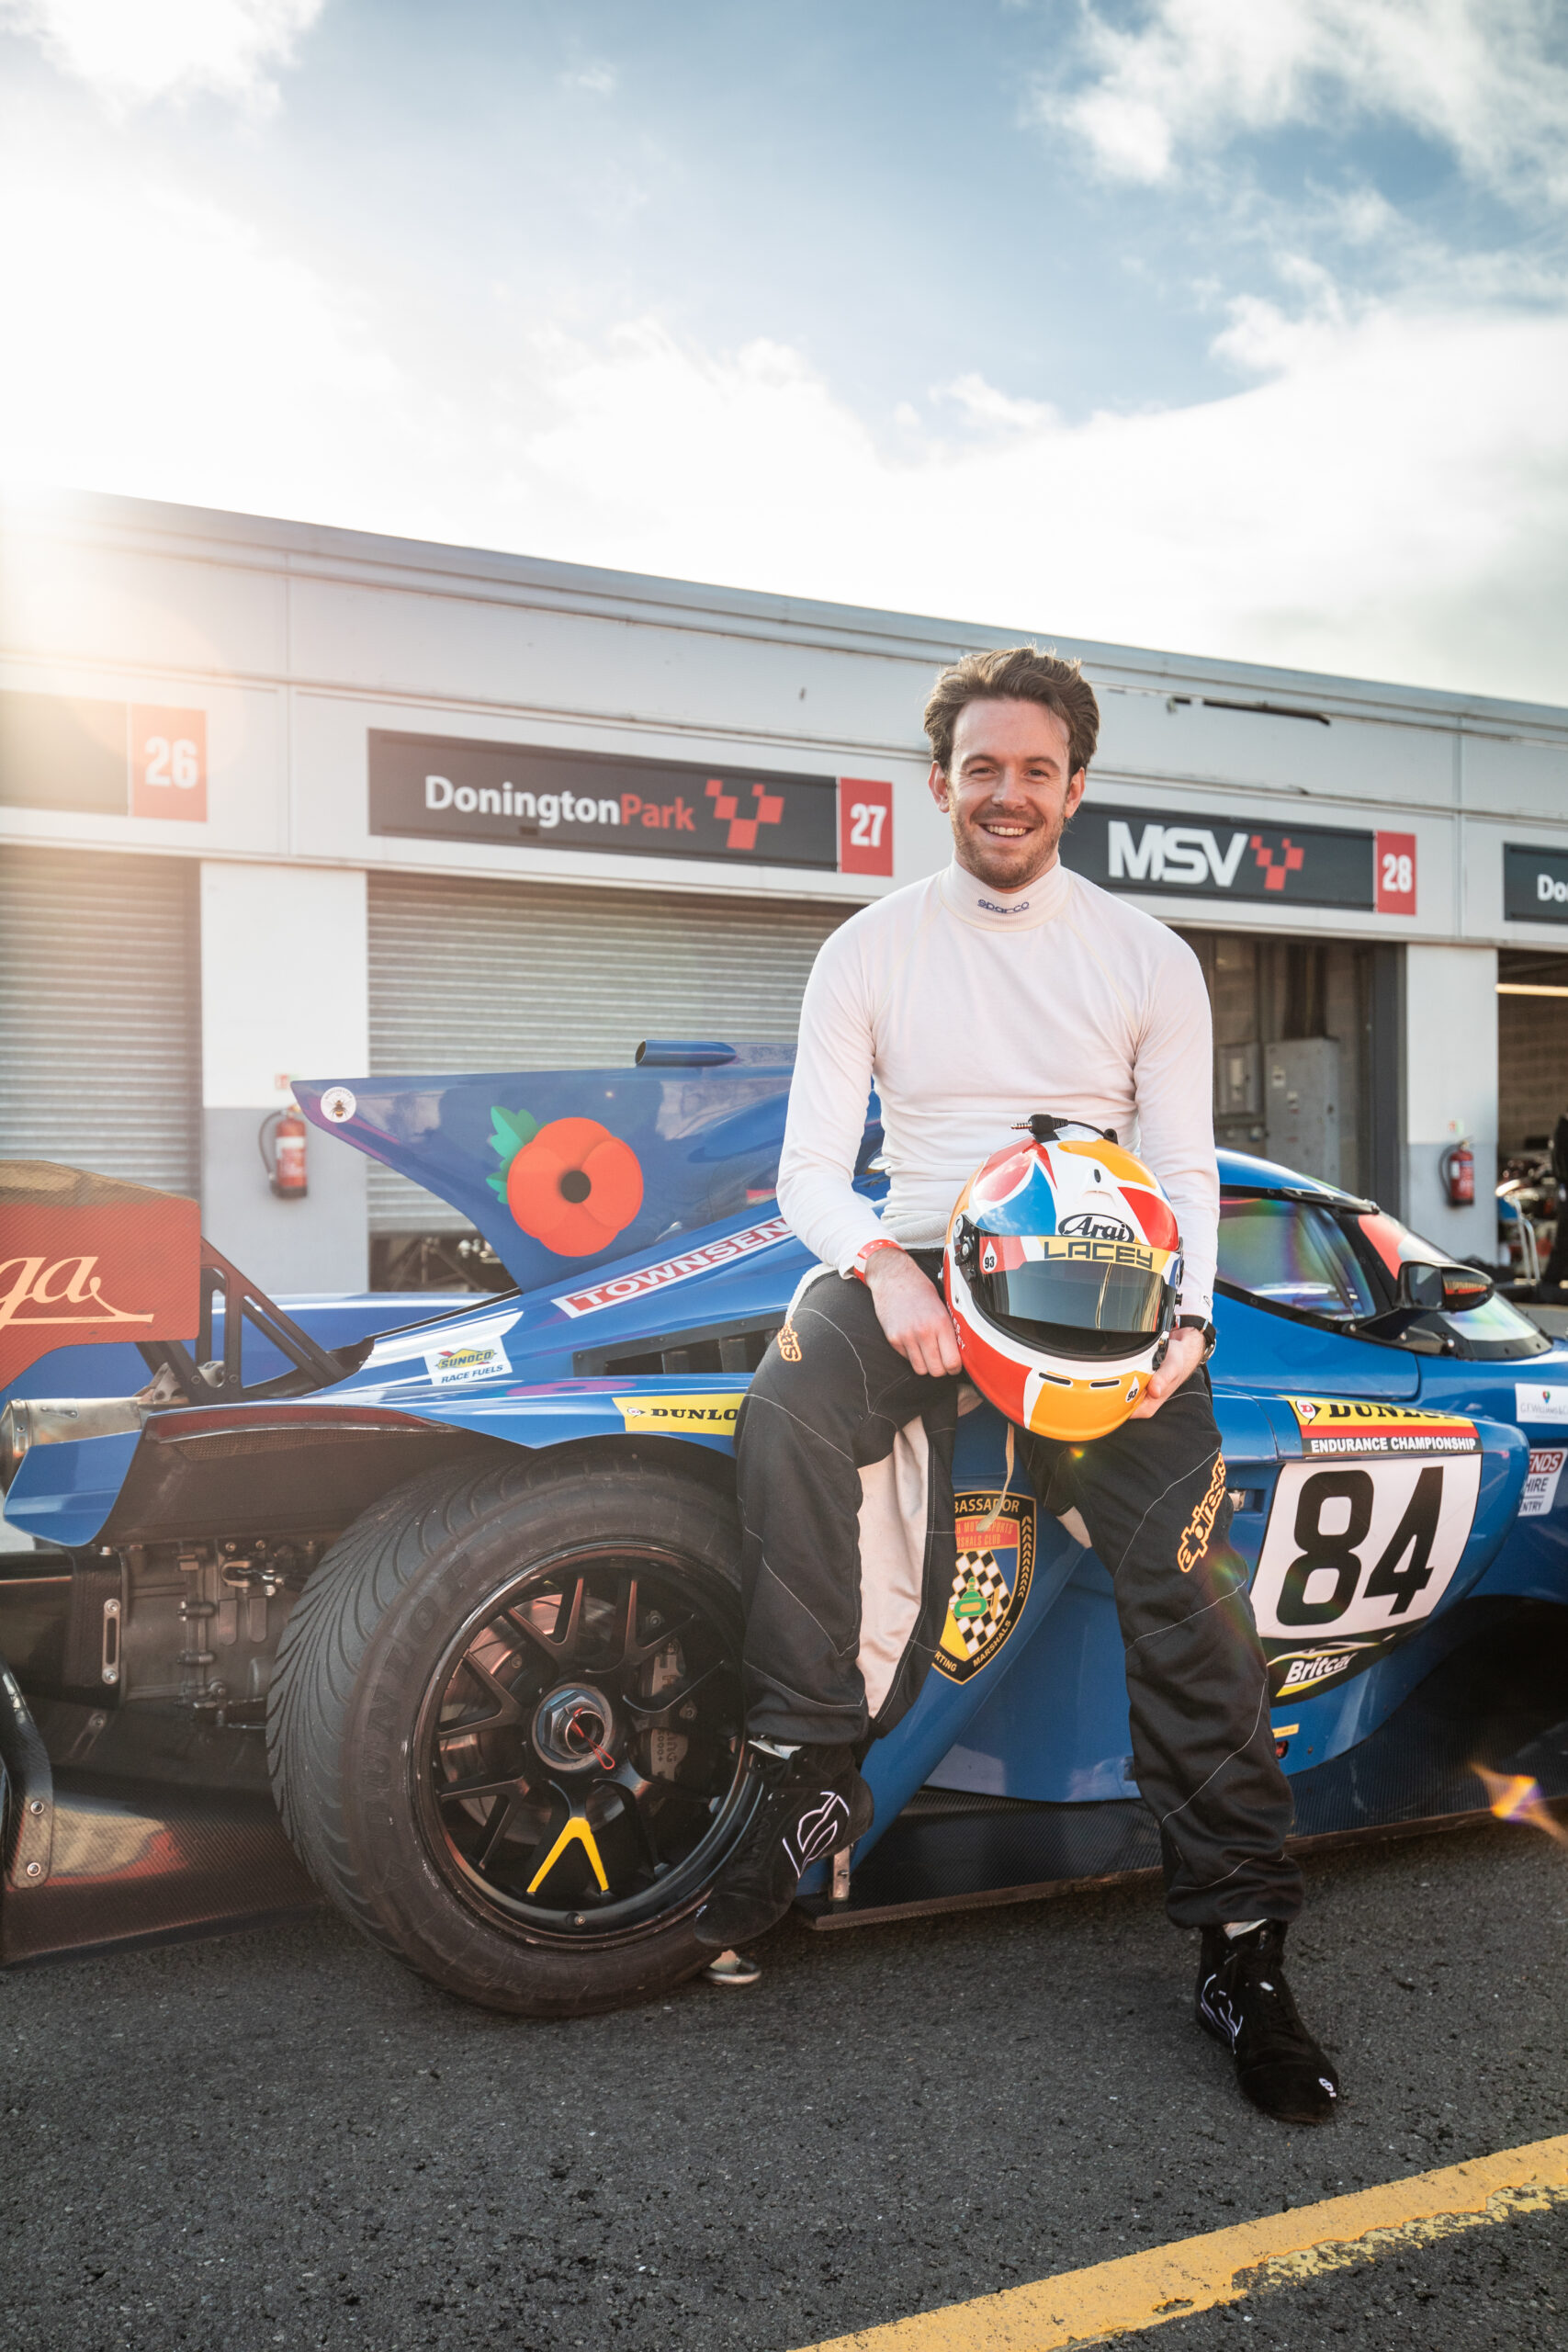 MILES LACEY BECOMES SMILES LACEY AS HE TESTS THE TURBO PRAGA R1 FOR SUPERCAR DRIVER